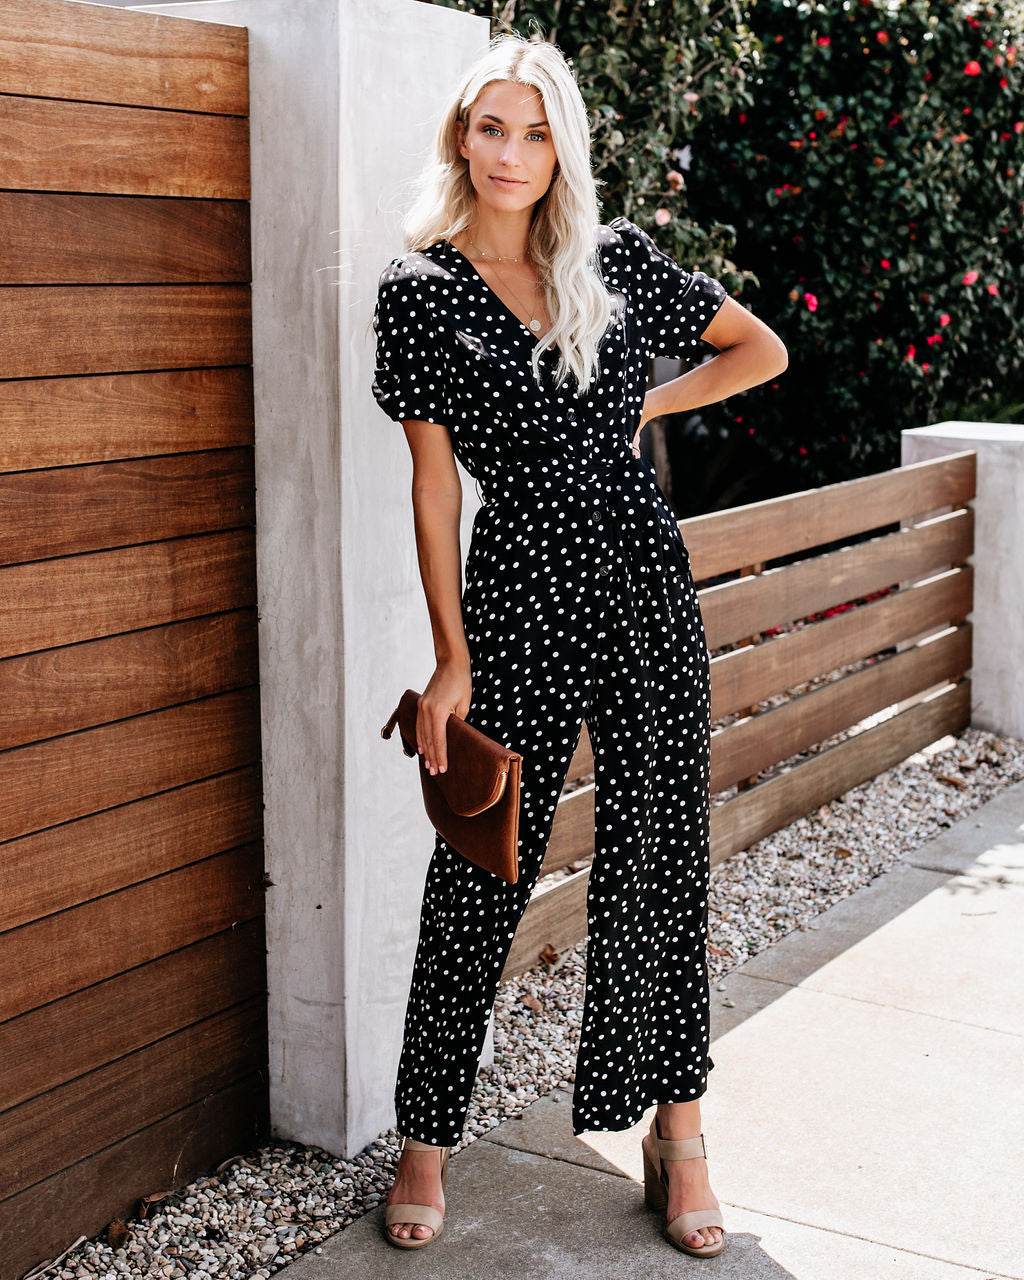 4cebfe2d5a7 Detail Product. ← Home - JUMPSUITS - String Of Pearls Polka Dot Jumpsuit